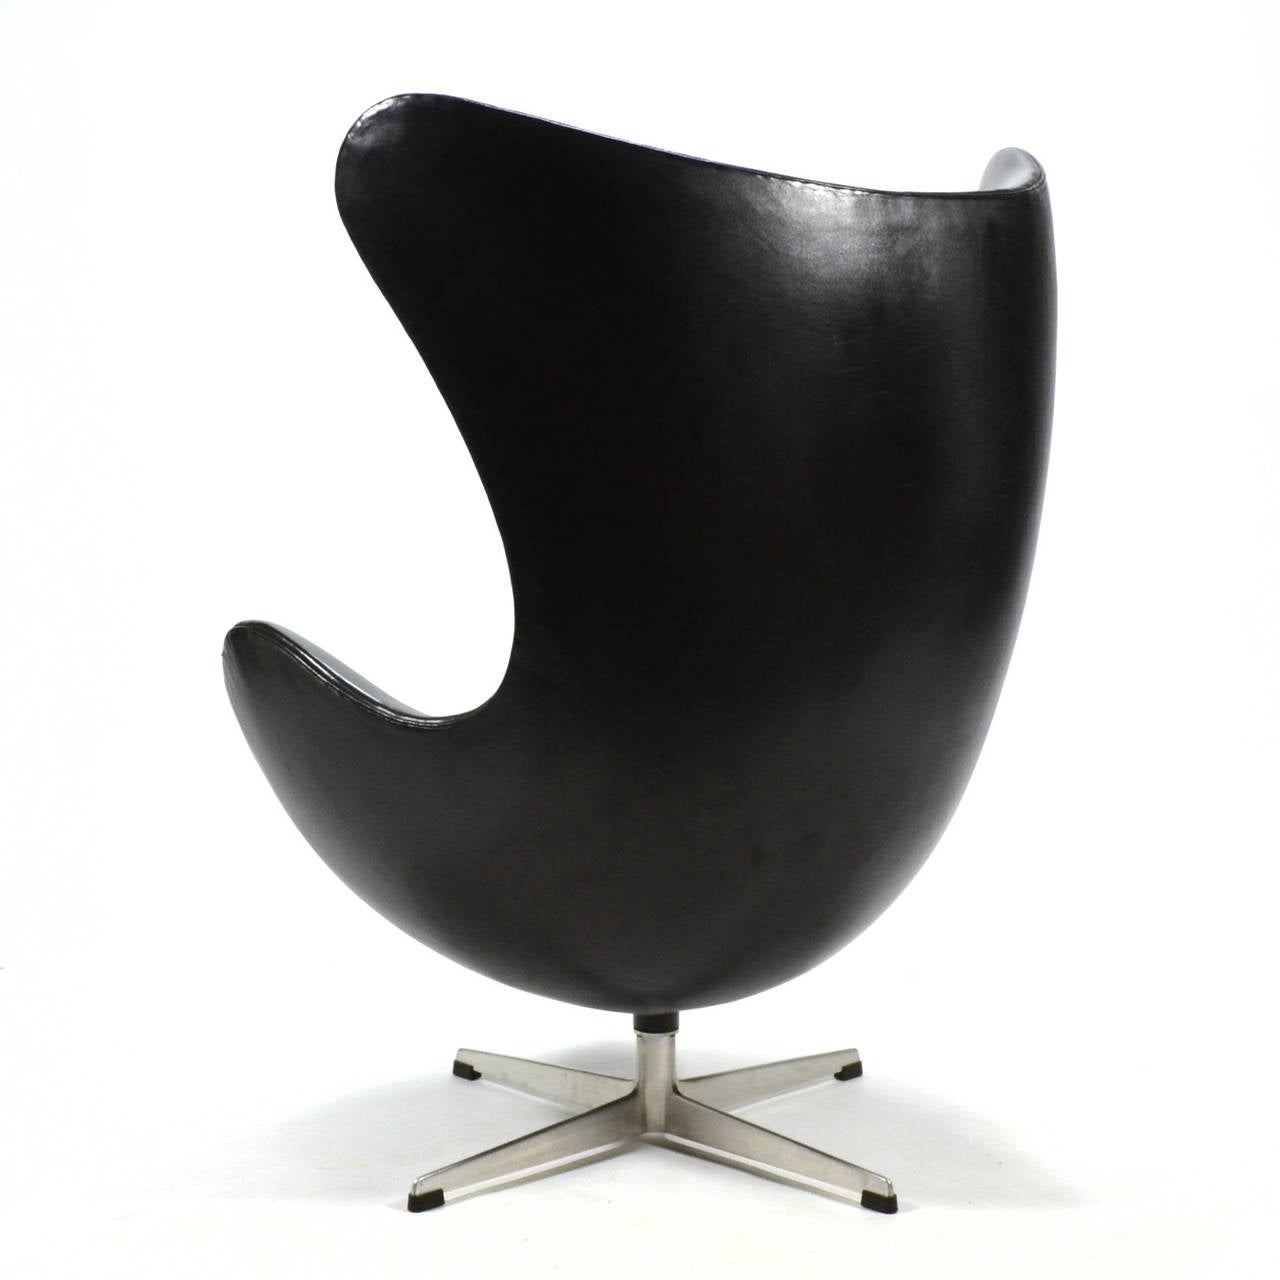 Arne jacobsen early egg chair in original black leather for Egg chair original